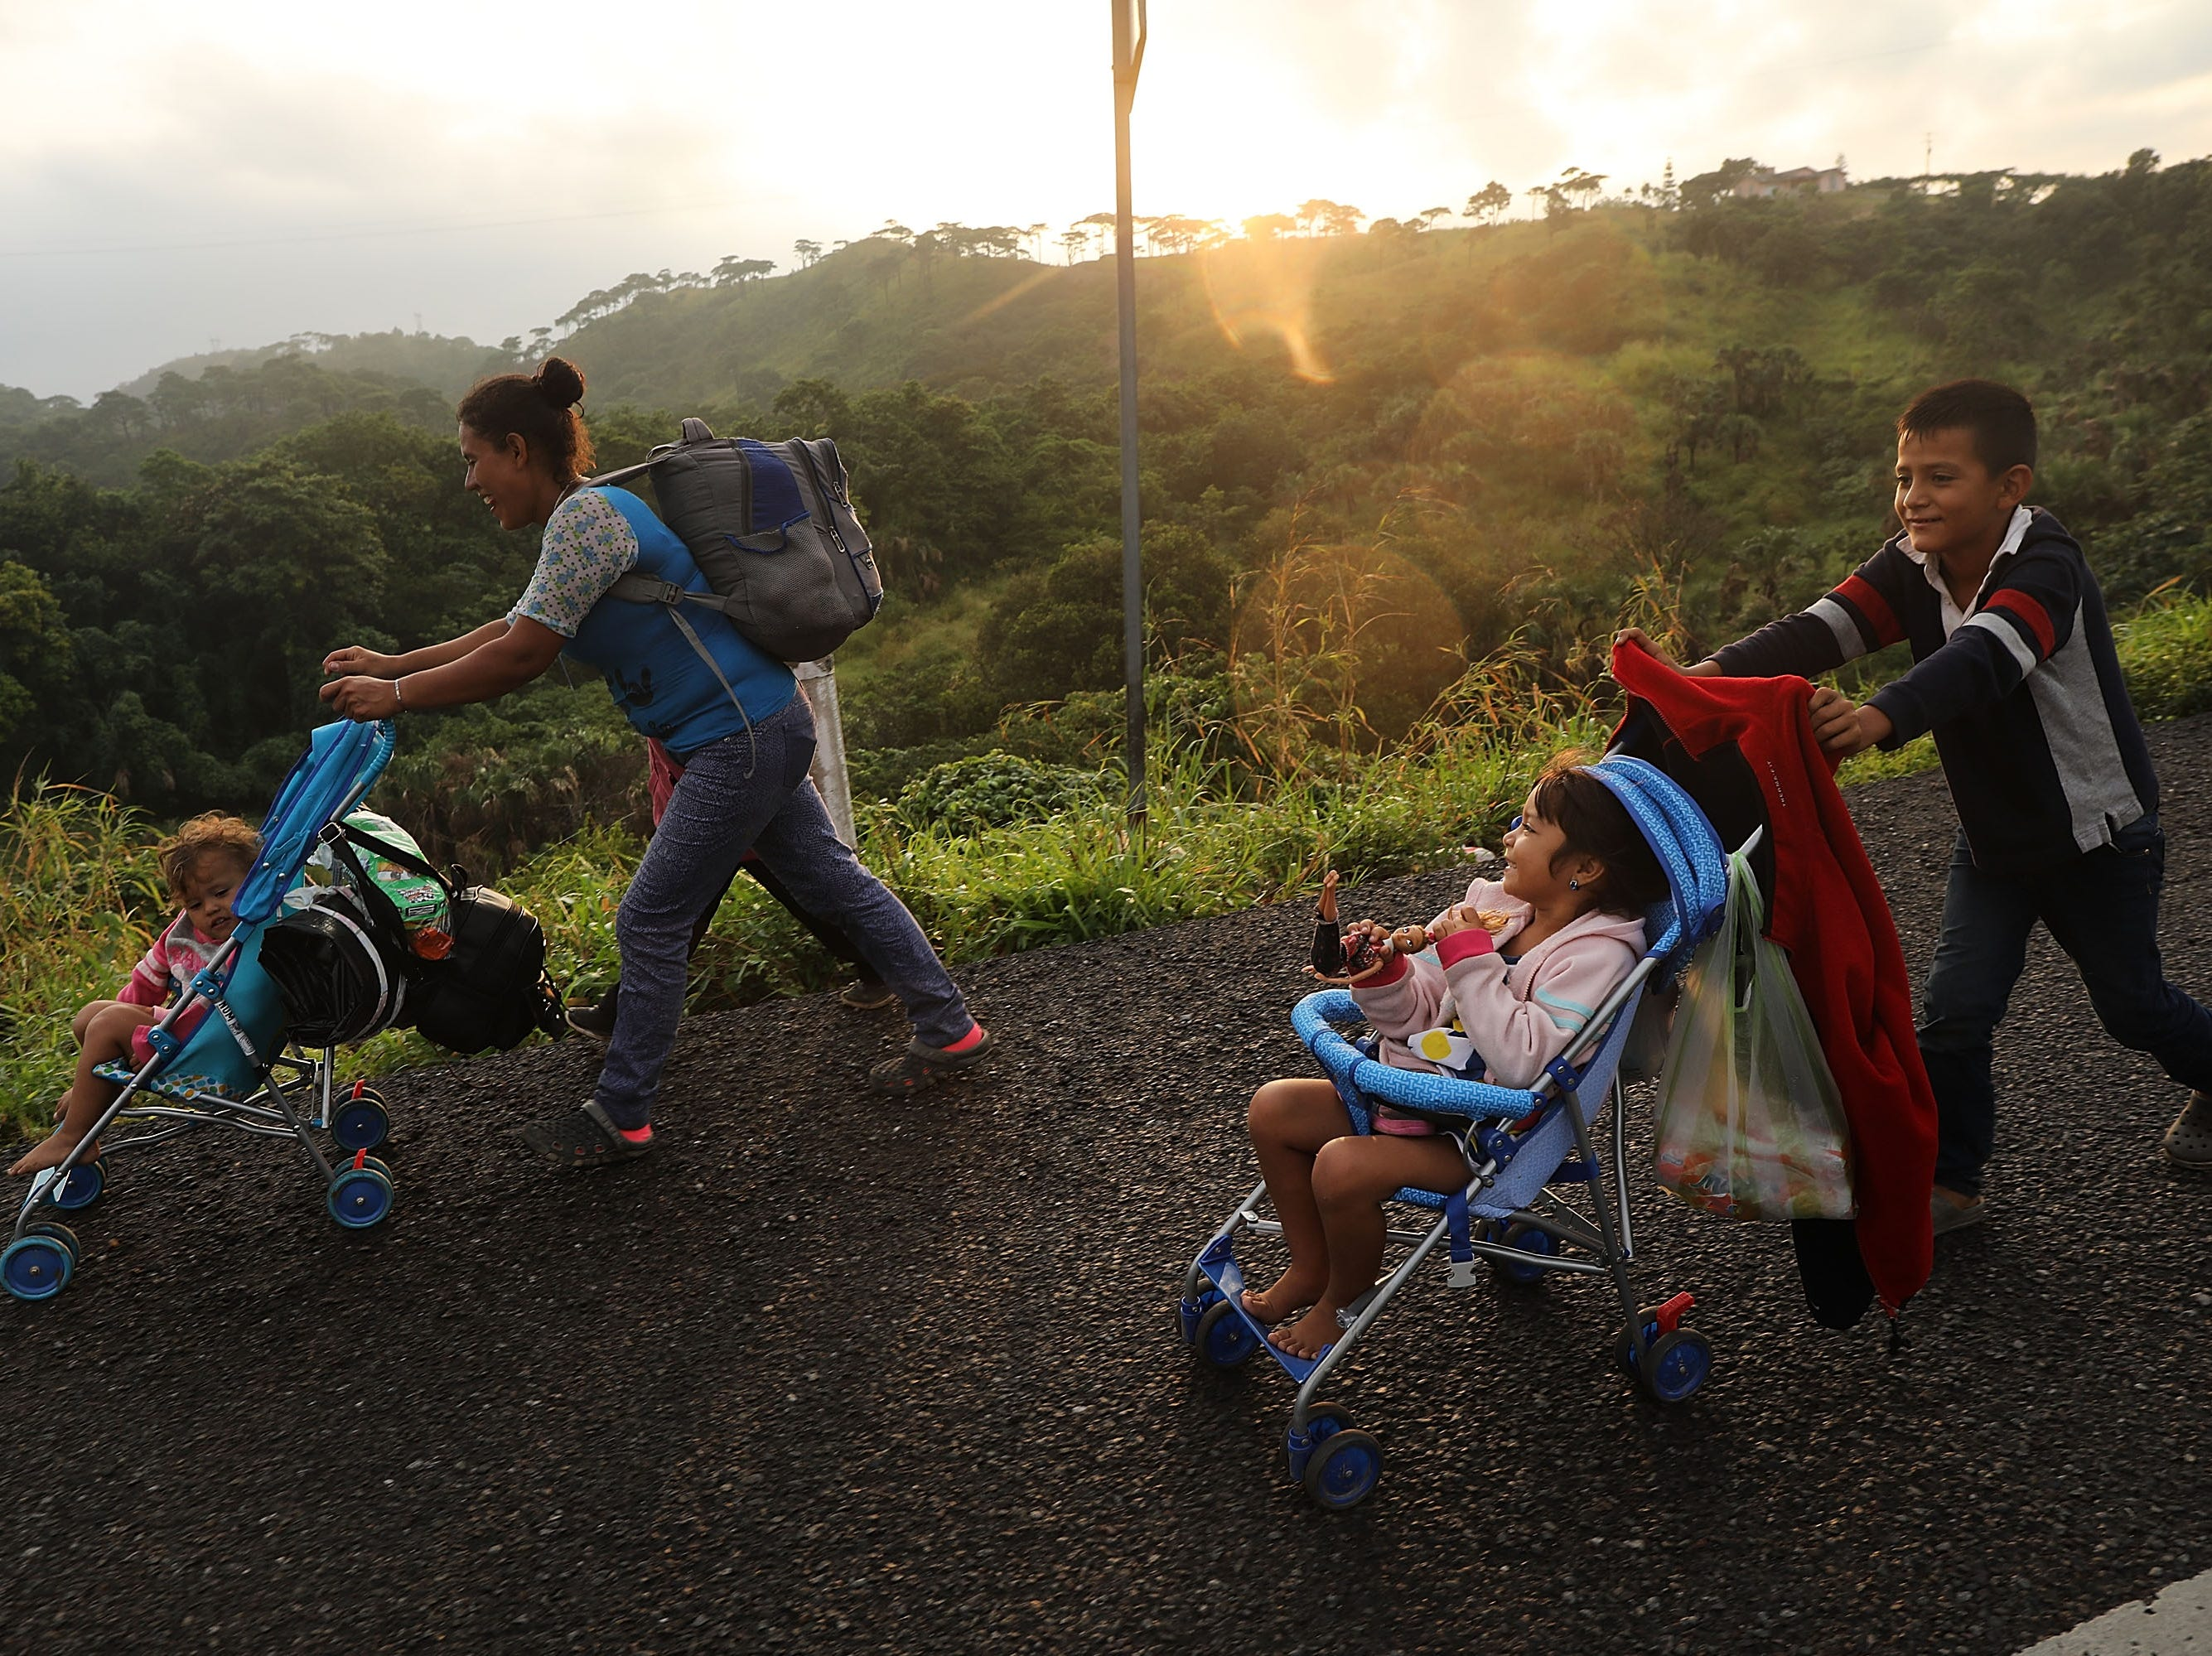 Members of the Central American migrant caravan move to the next town at dawn on Nov. 02, 2018 in Matias Romero, Mexico. The group of migrants, many of them fleeing violence in their home countries, last took a rest day on Wednesday and has resumed their journey towards the United States border. As fatigue from the heat, distance and poor sanitary conditions has set in, the numbers of people participating in the trek has slowly dwindled but a significant group are still determined to get to the United States. President Donald Trump said Wednesday as many as 15,000 active-duty troops may be deployed to the U.